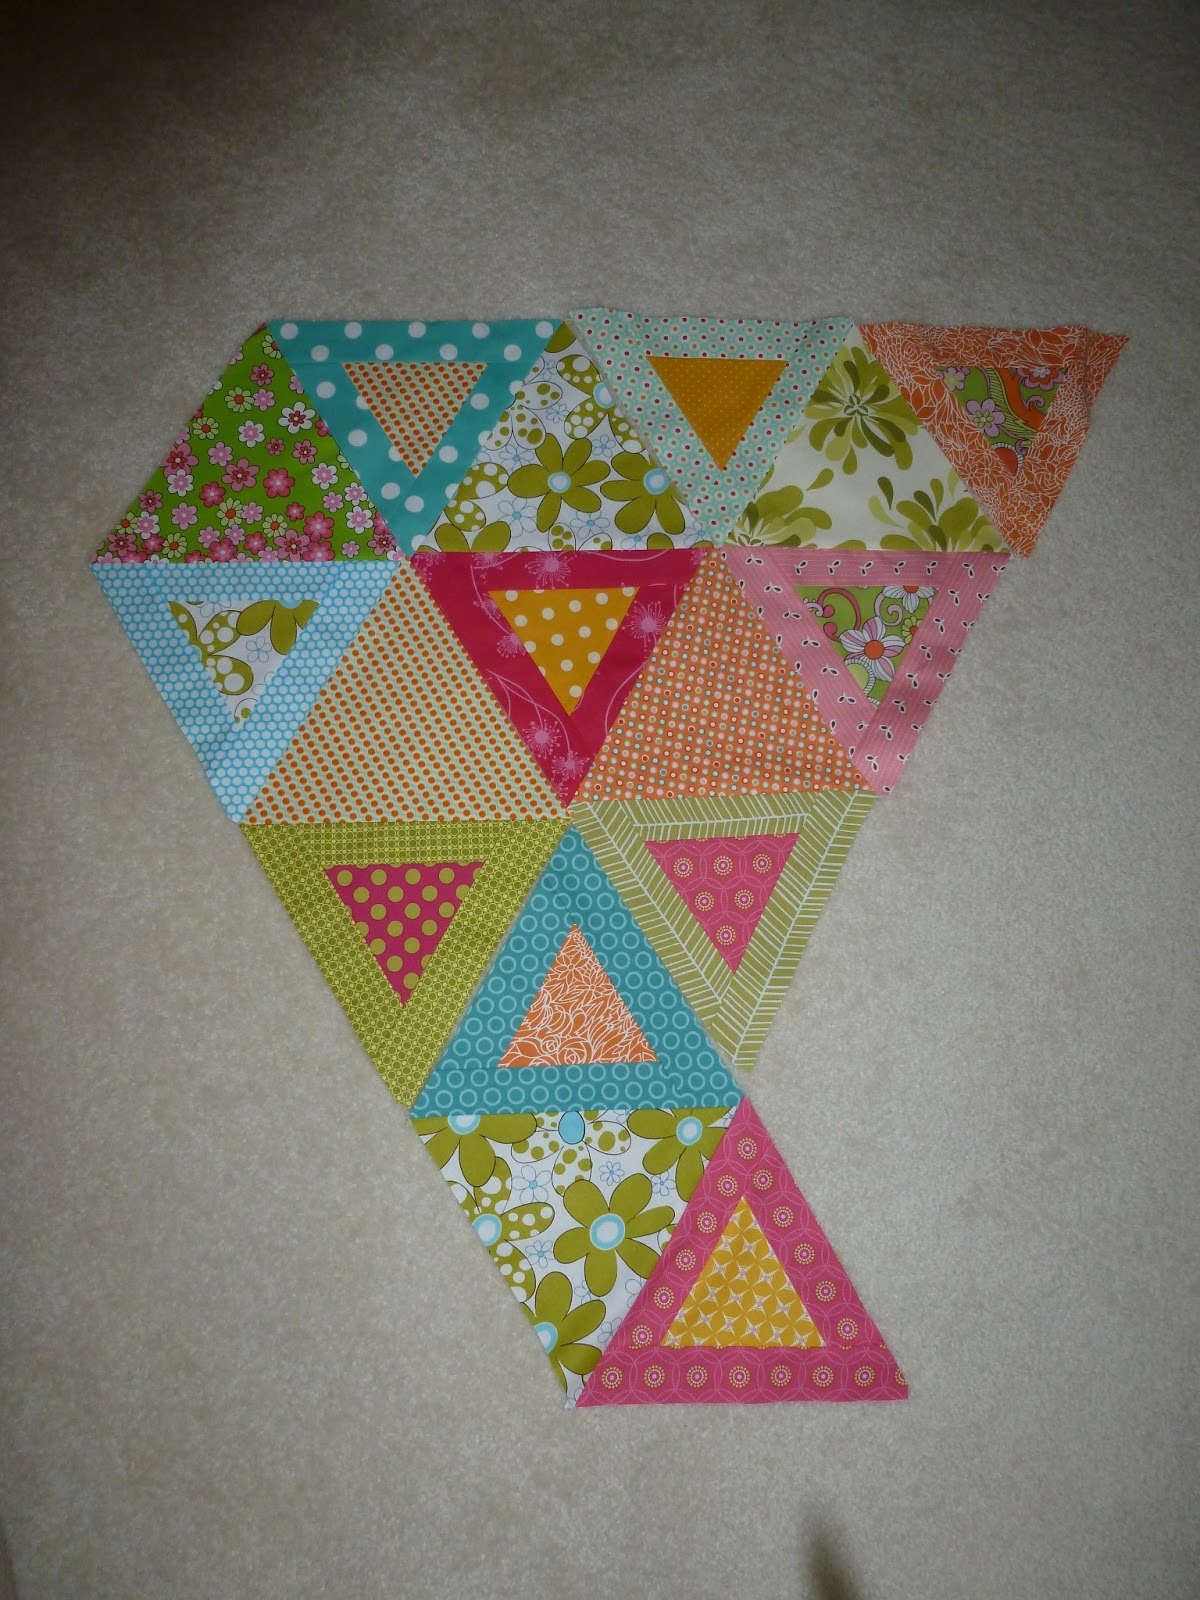 Rose Room Quilts Hex N More Triangles And Hexagons